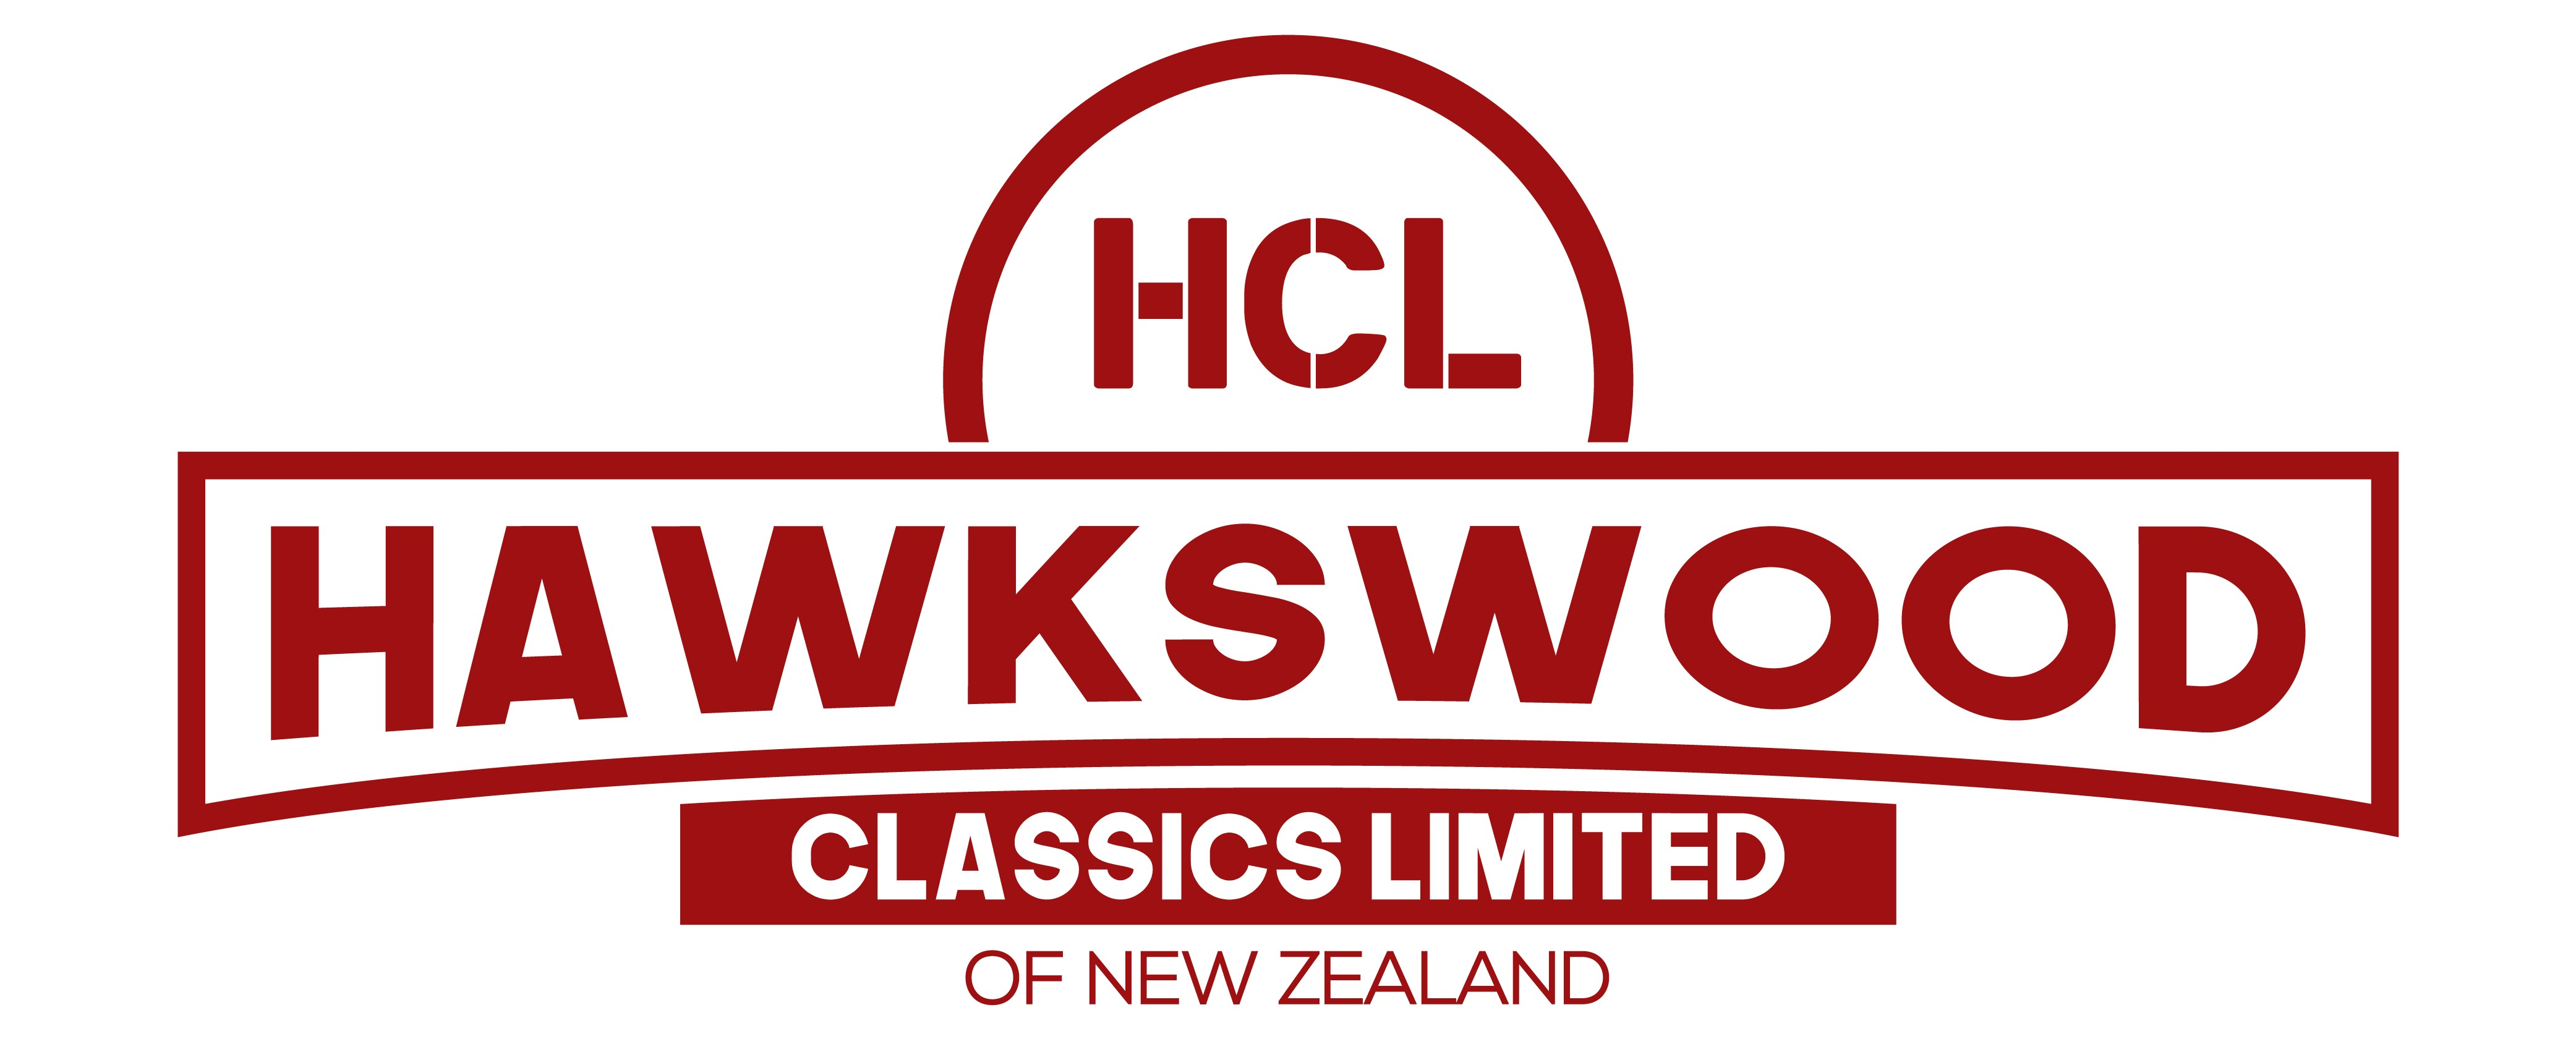 Hawkswood Classic Car Parts